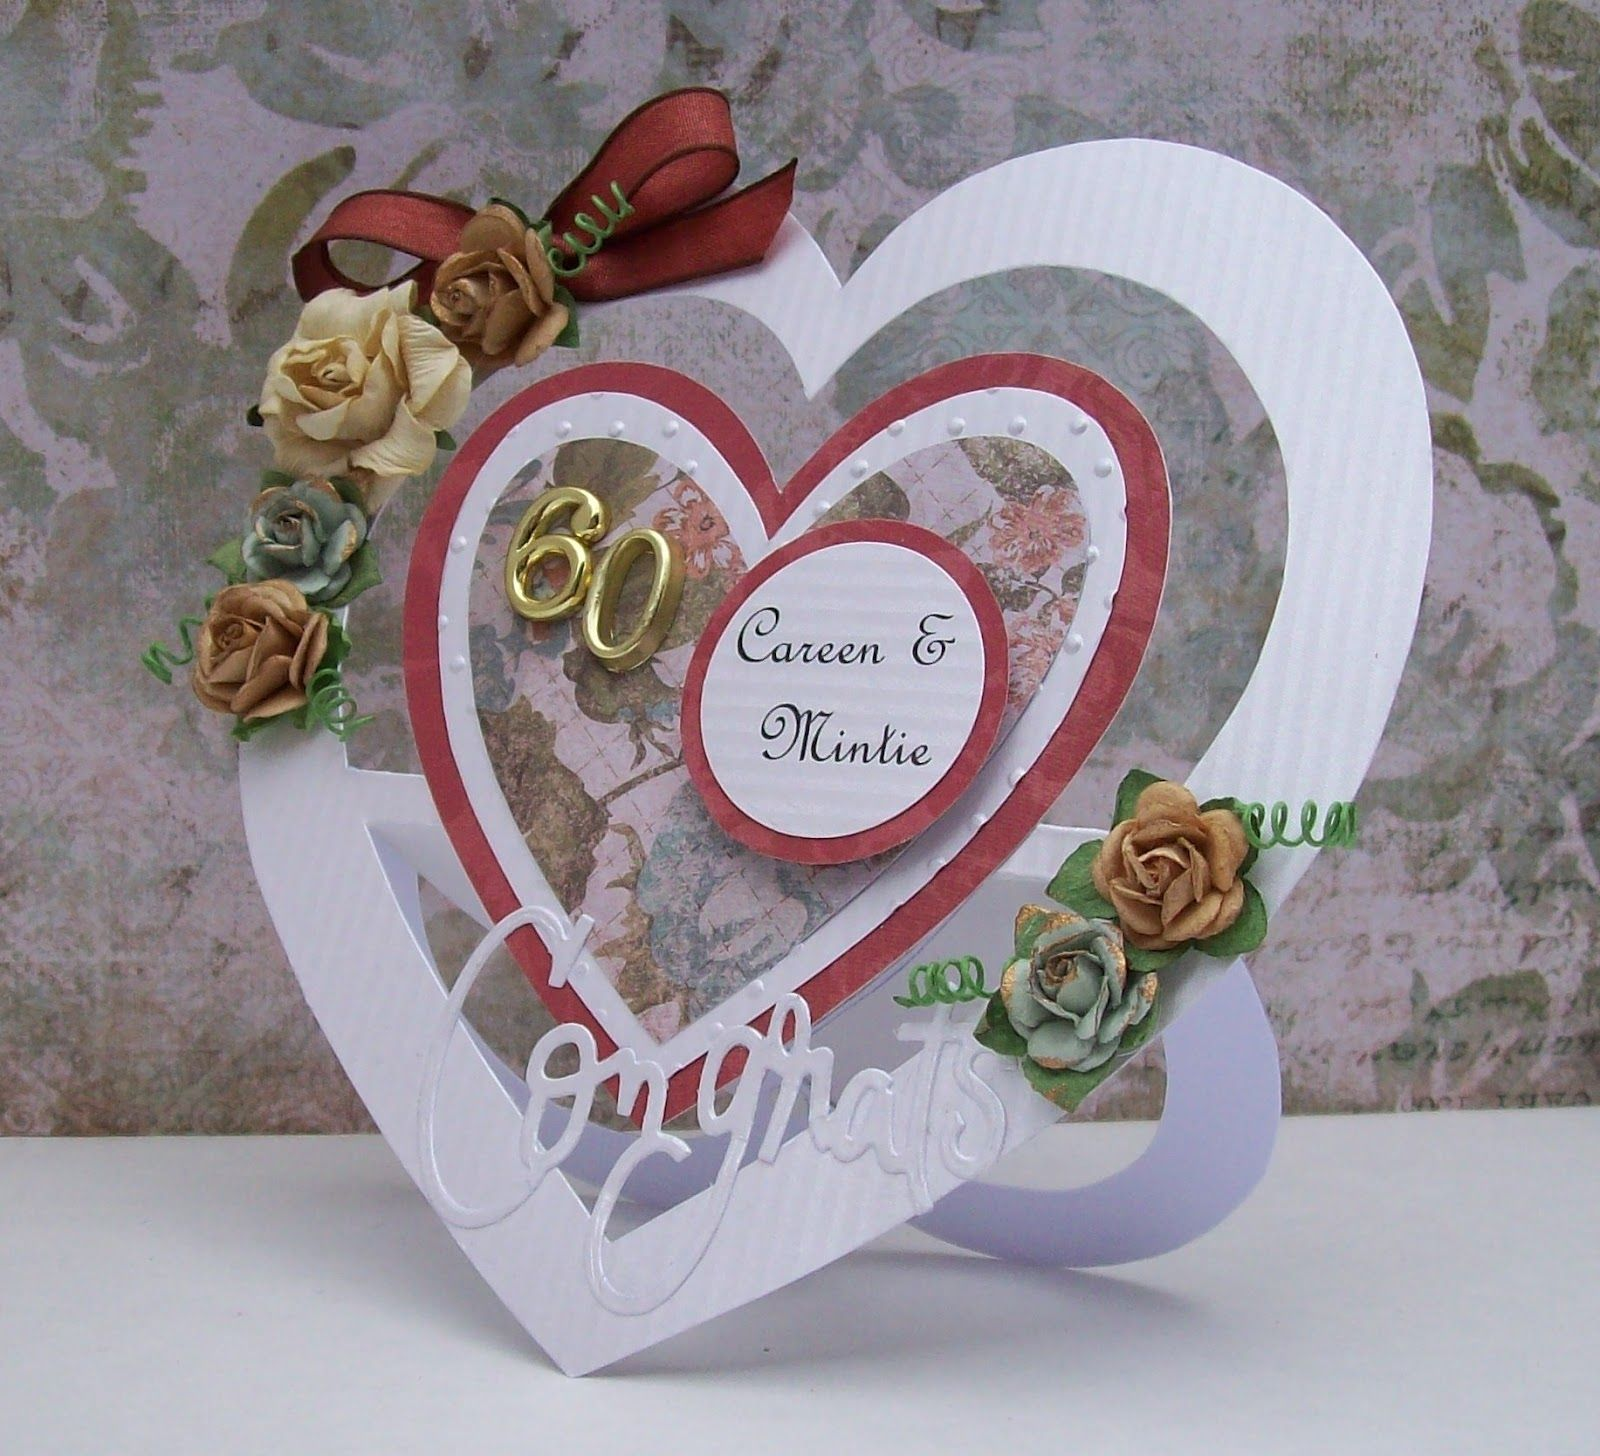 Especially for my friends at Cardmaking Paradise